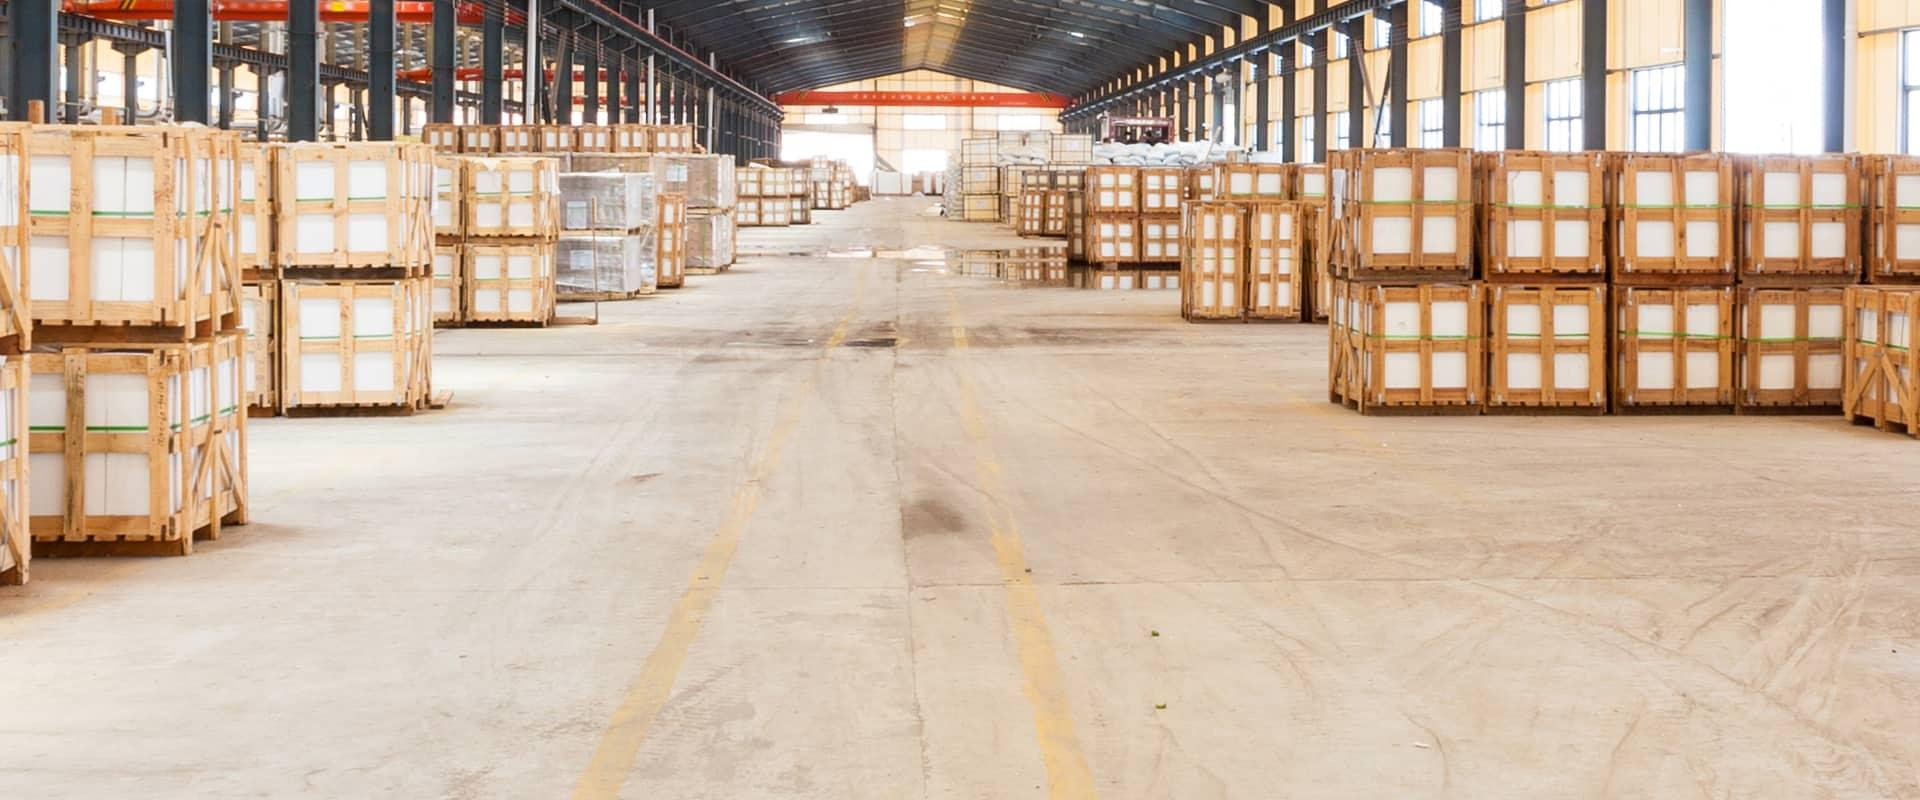 interior view of a warehouse in vail colorado